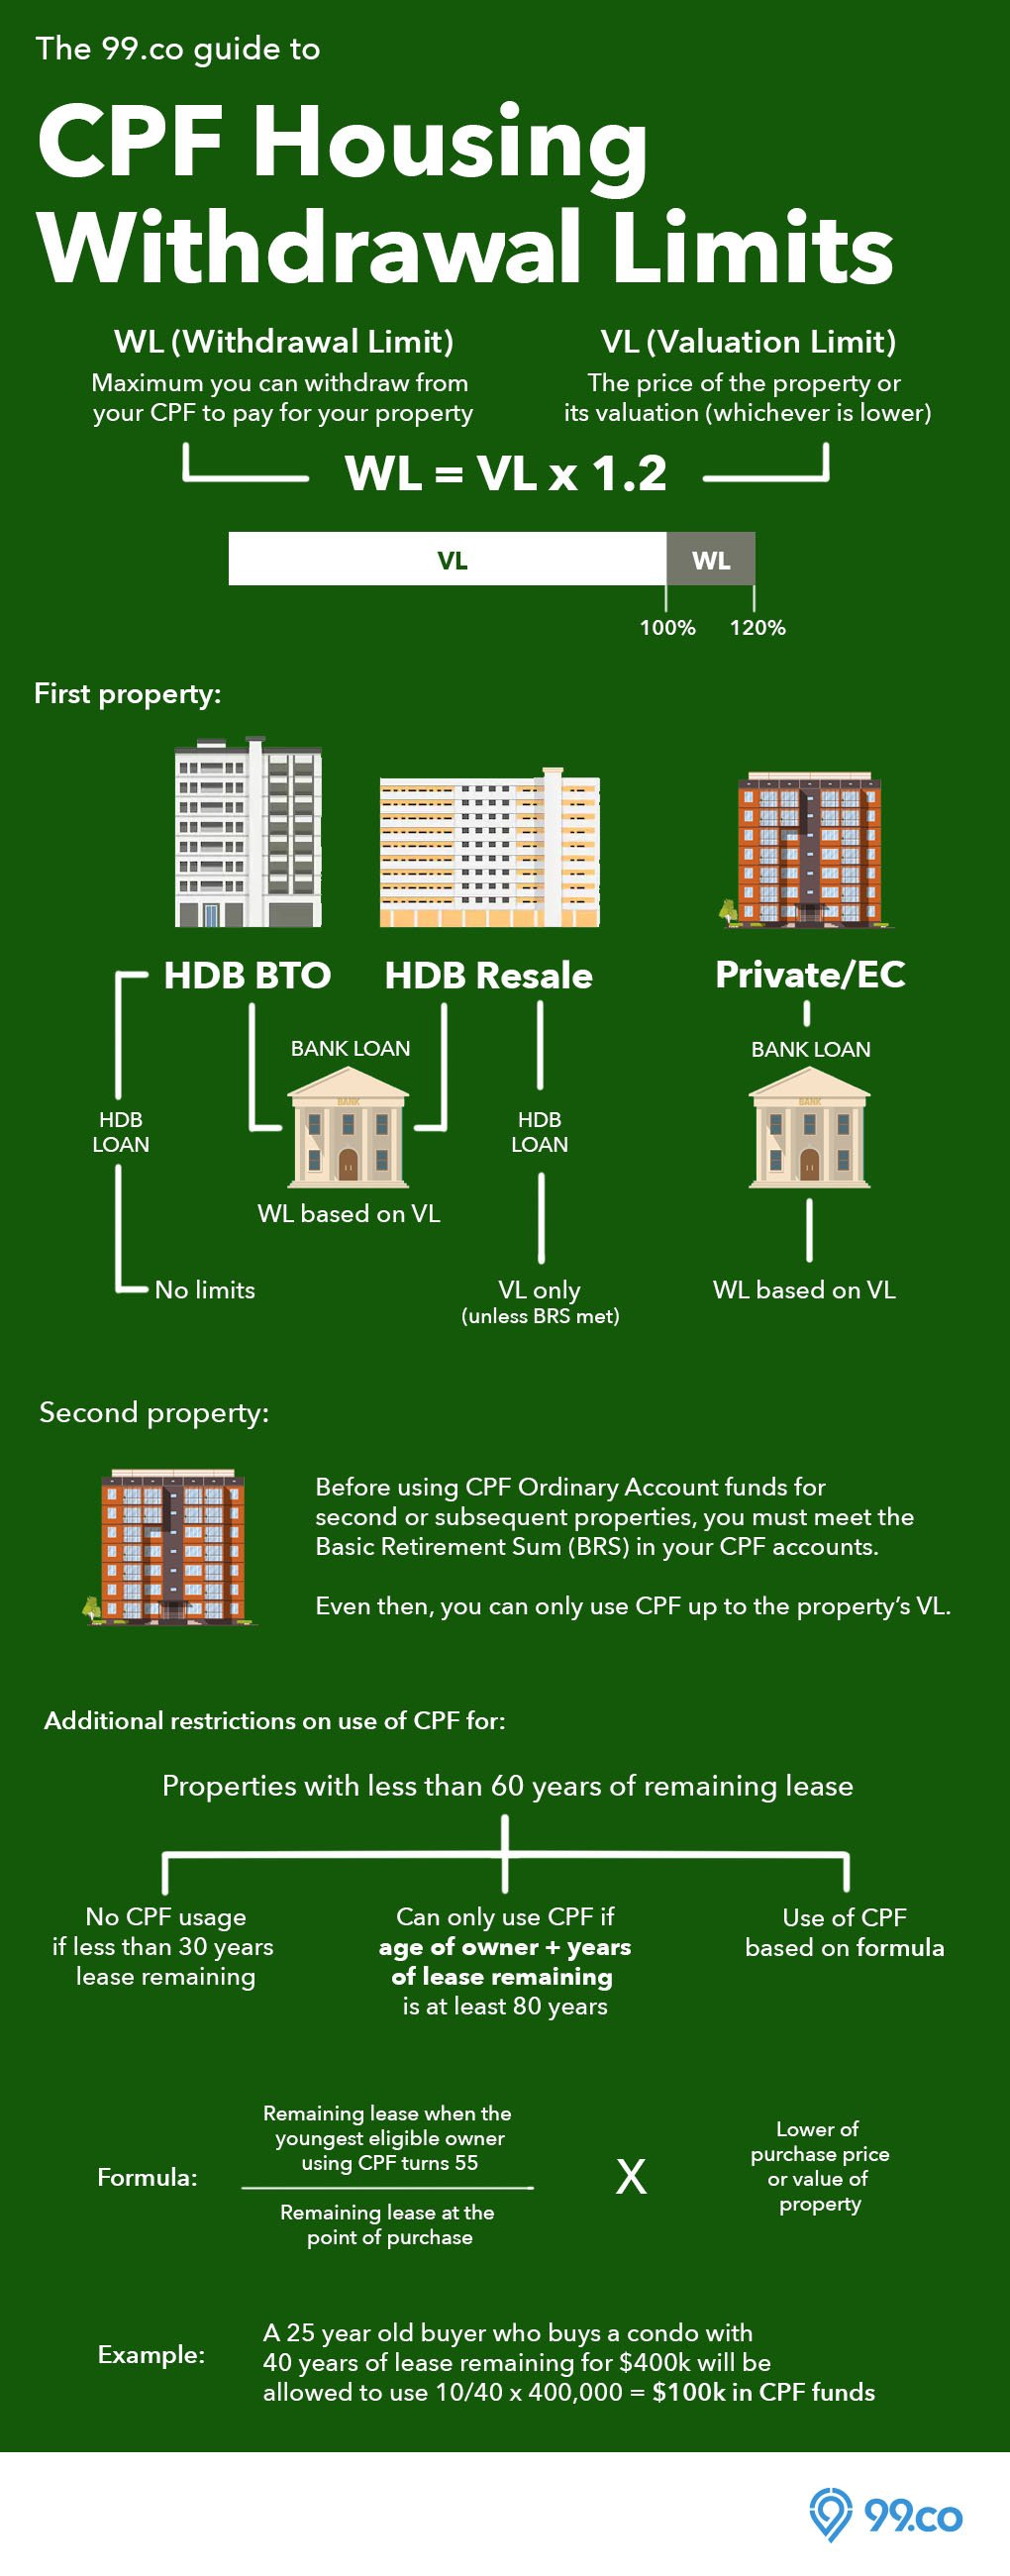 CPF Housing Withdrawal Limits Infographic